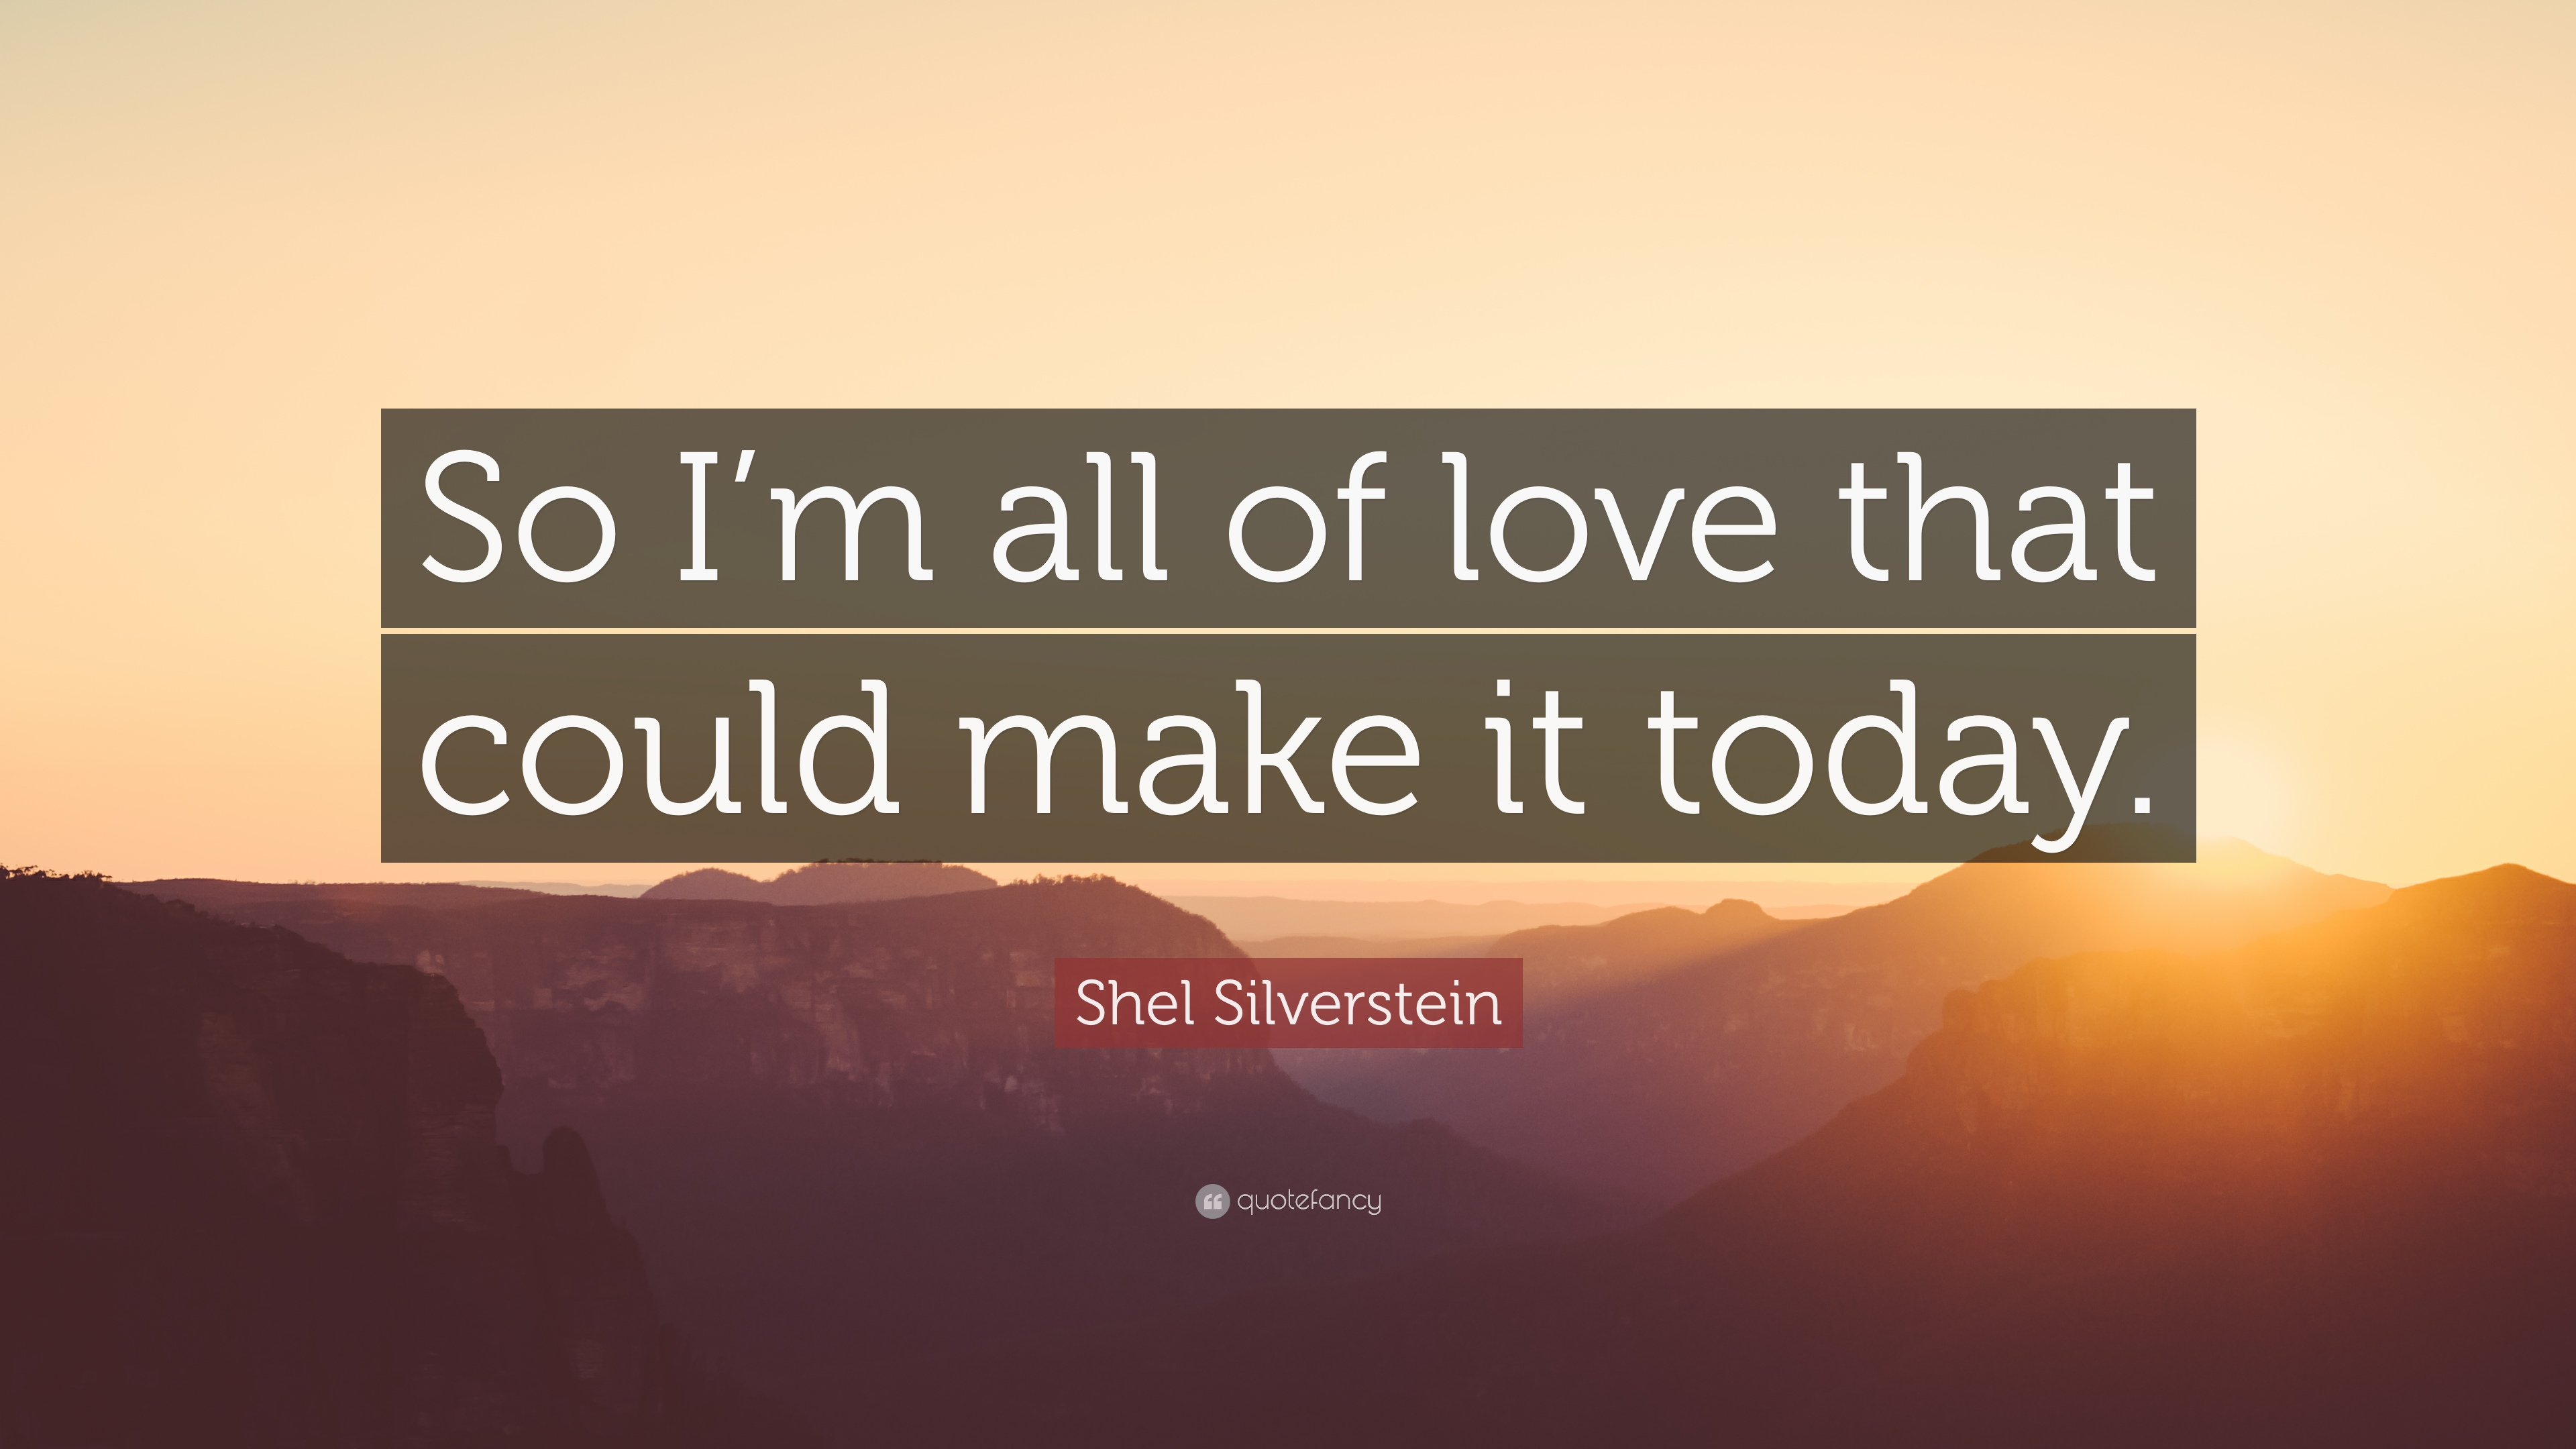 Love Shel Silverstein Quotes: Shel Silverstein Quotes (71 Wallpapers)